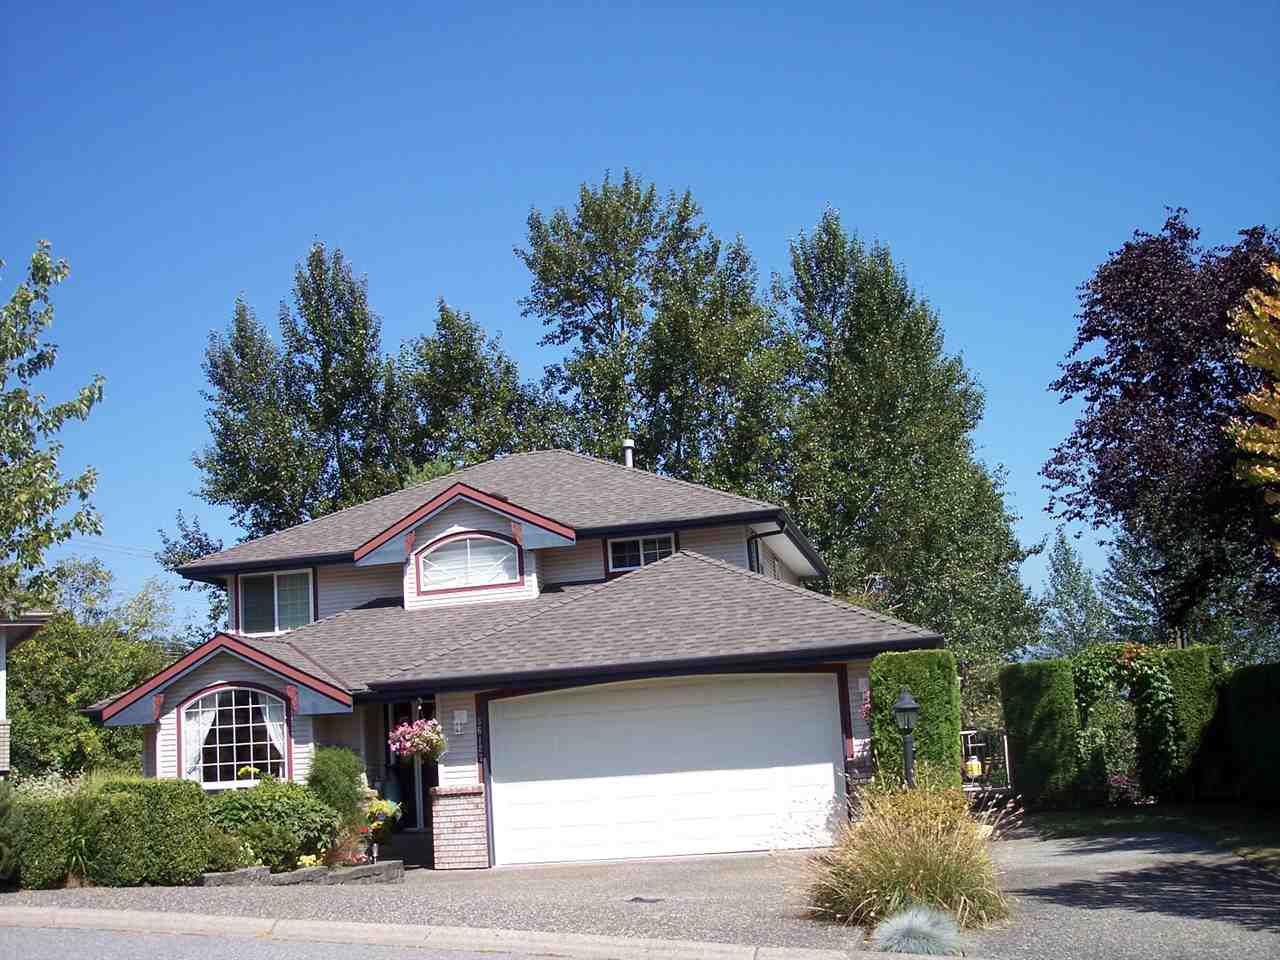 """Main Photo: 36127 WALTER Road in Abbotsford: Abbotsford East House for sale in """"MOUNTAIN VILLAGE"""" : MLS®# R2097399"""